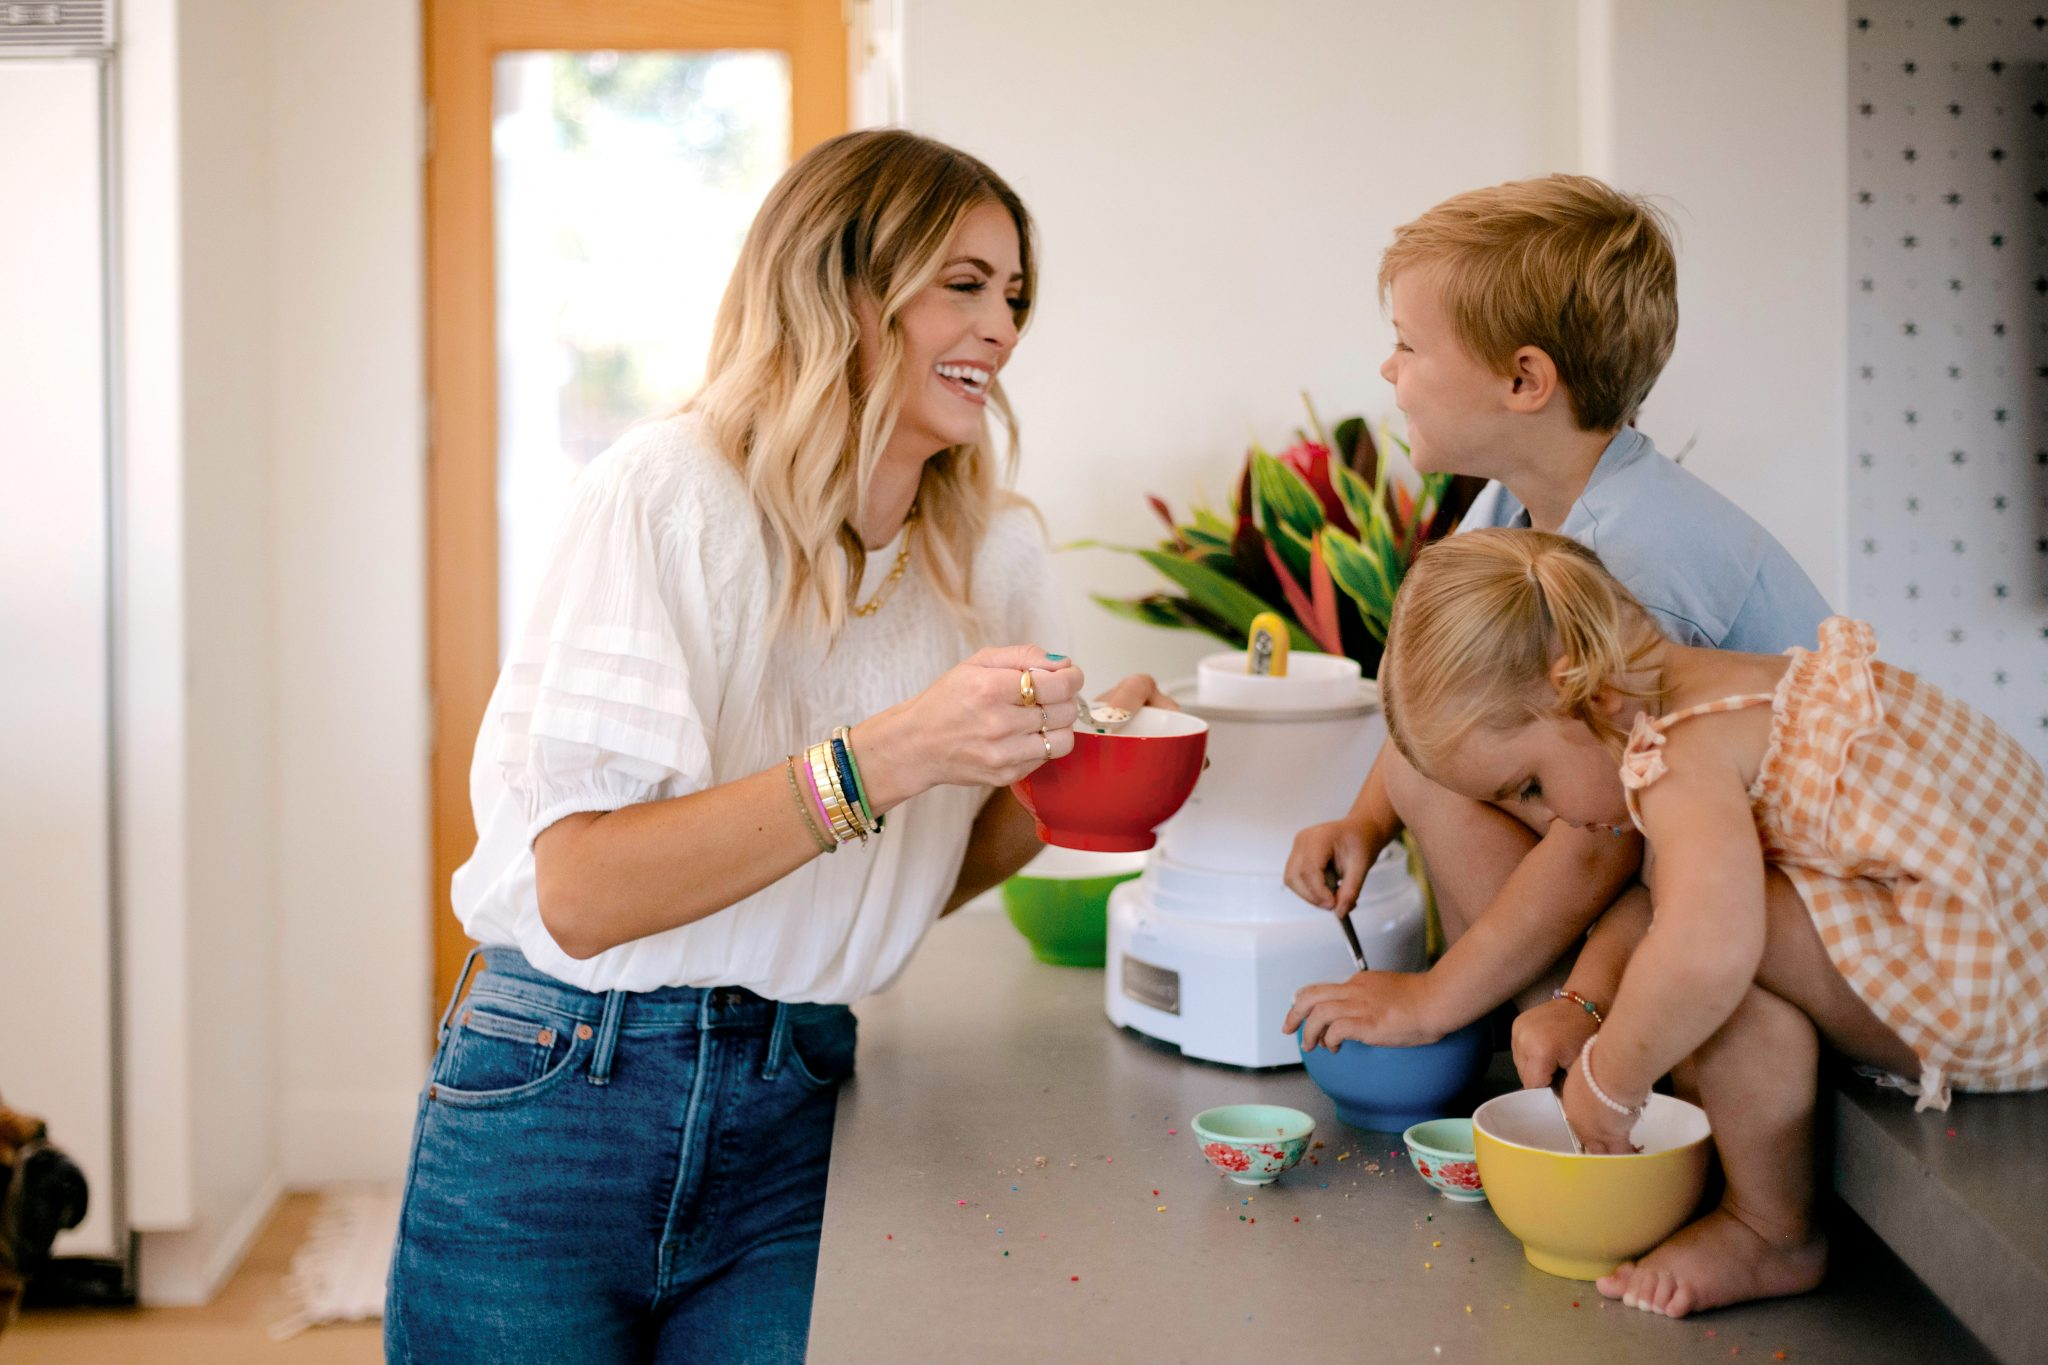 woman and children eating ice cream